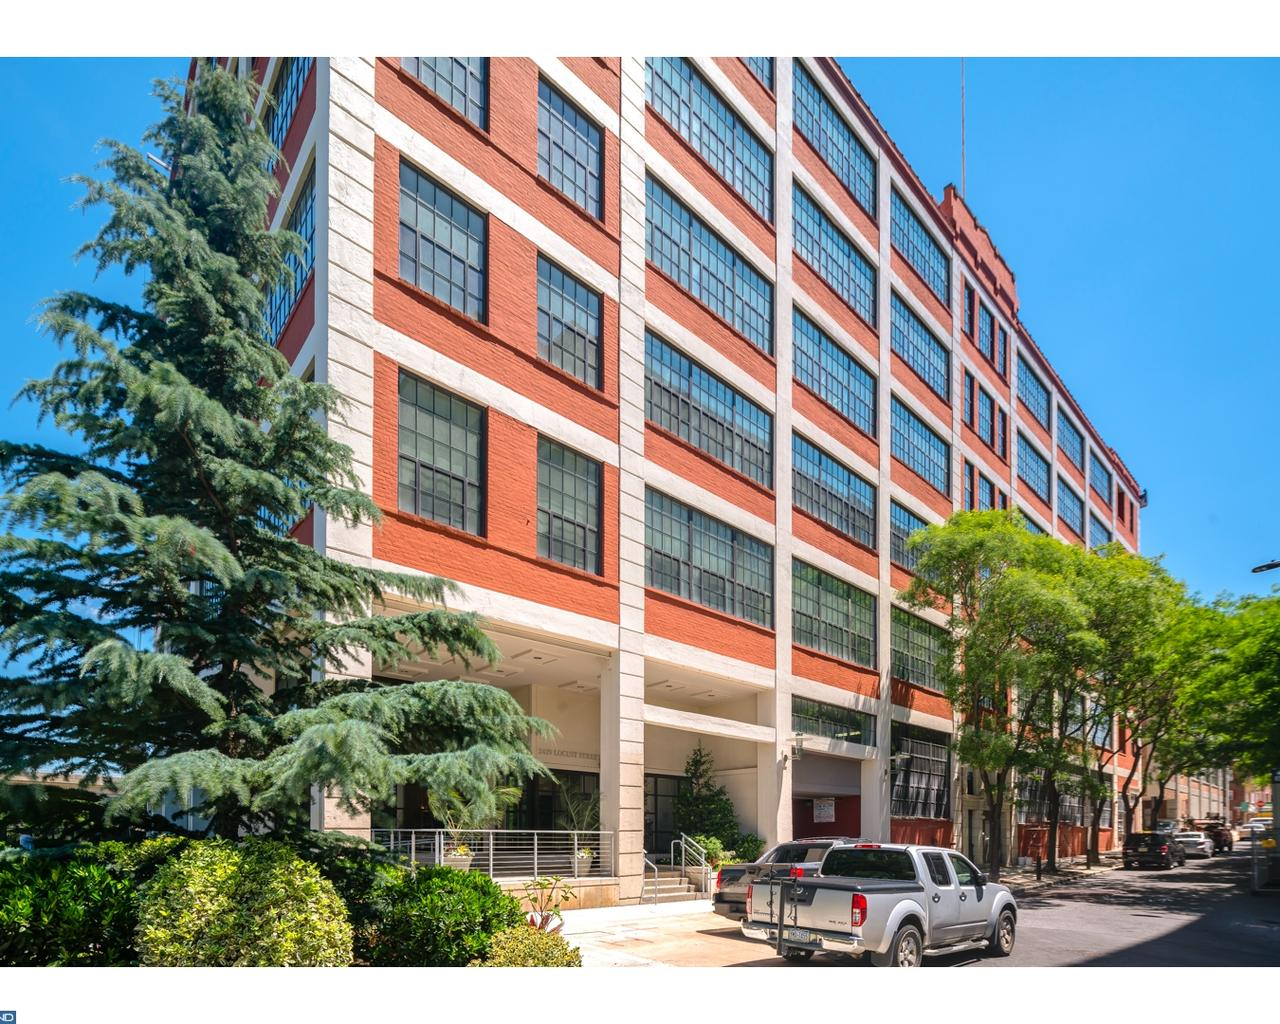 Photo of home for sale at 2429-41 LOCUST ST ##520, Philadelphia PA